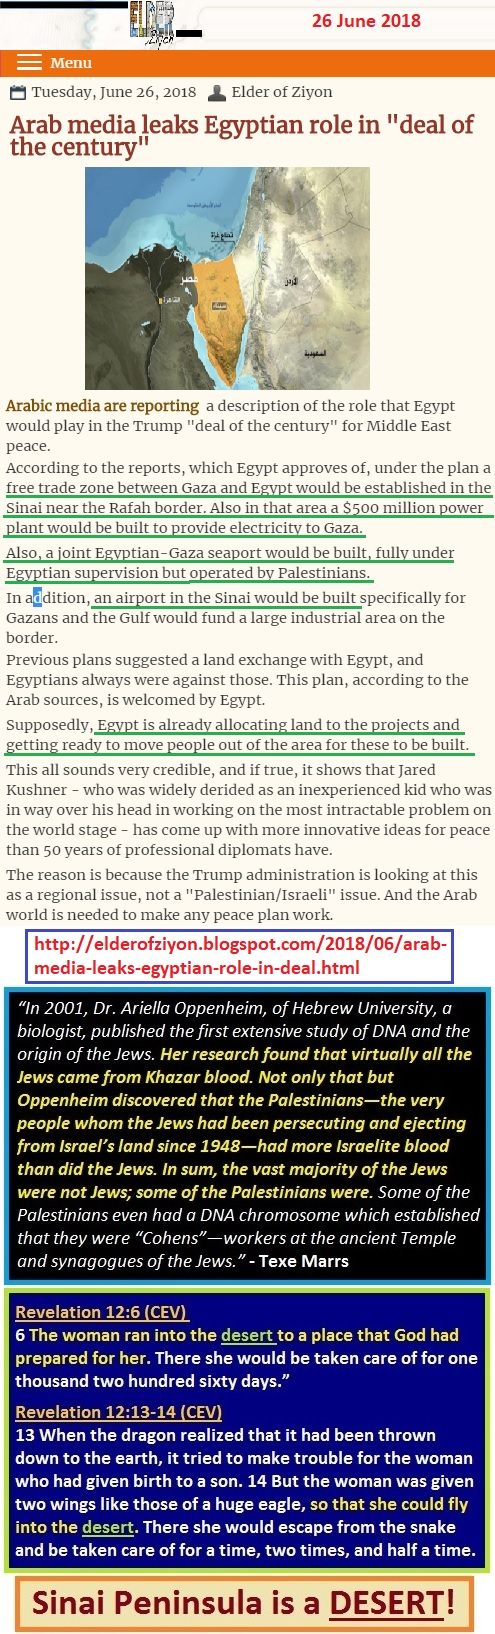 http://elderofziyon.blogspot.com/2018/06/arab-media-leaks-egyptian-role-in-deal.html